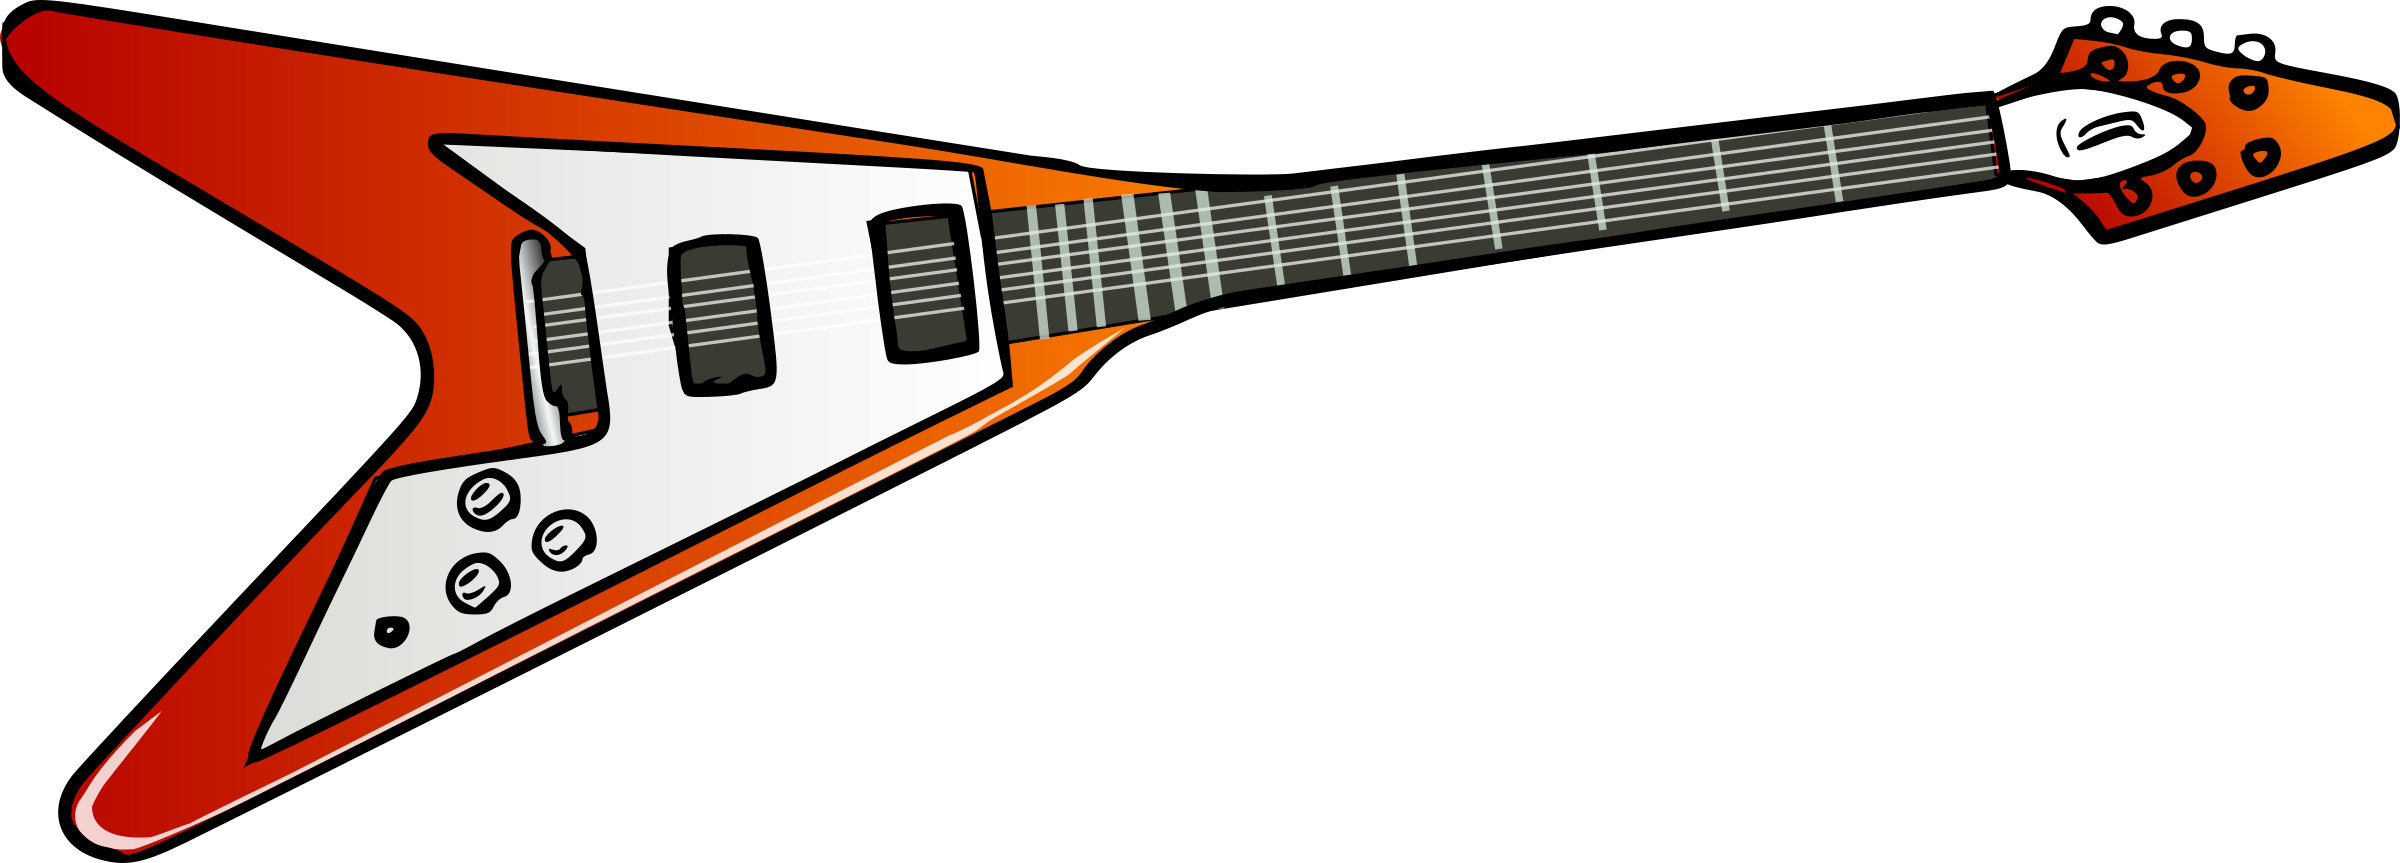 Rock guitar png. Download transparent image arts